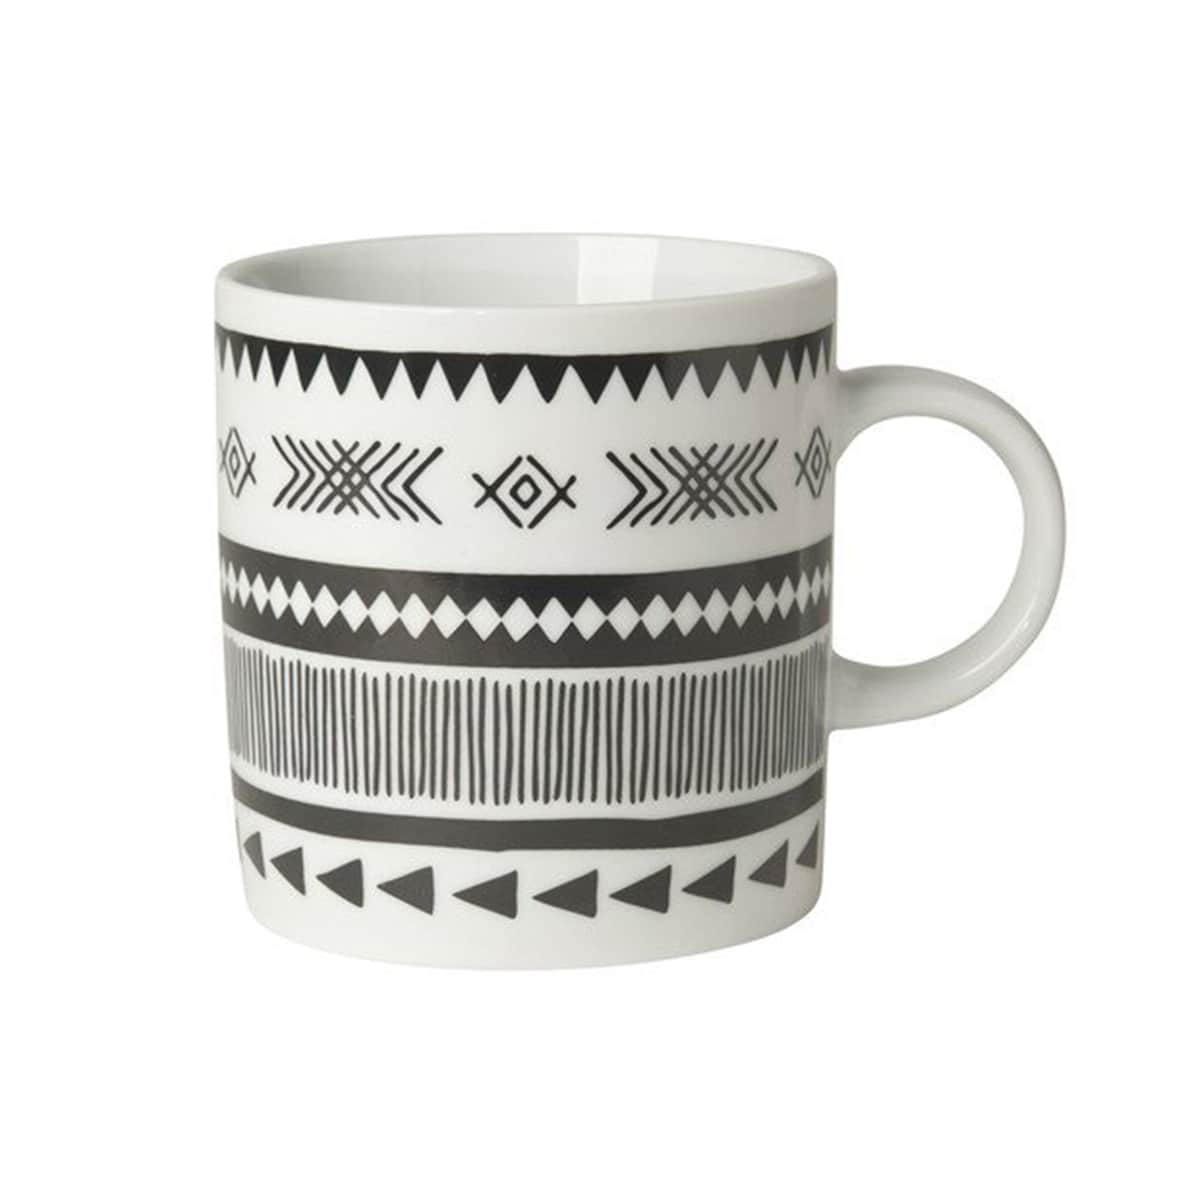 10 Pretty Mugs to Dress Up Your Desk: gallery image 2